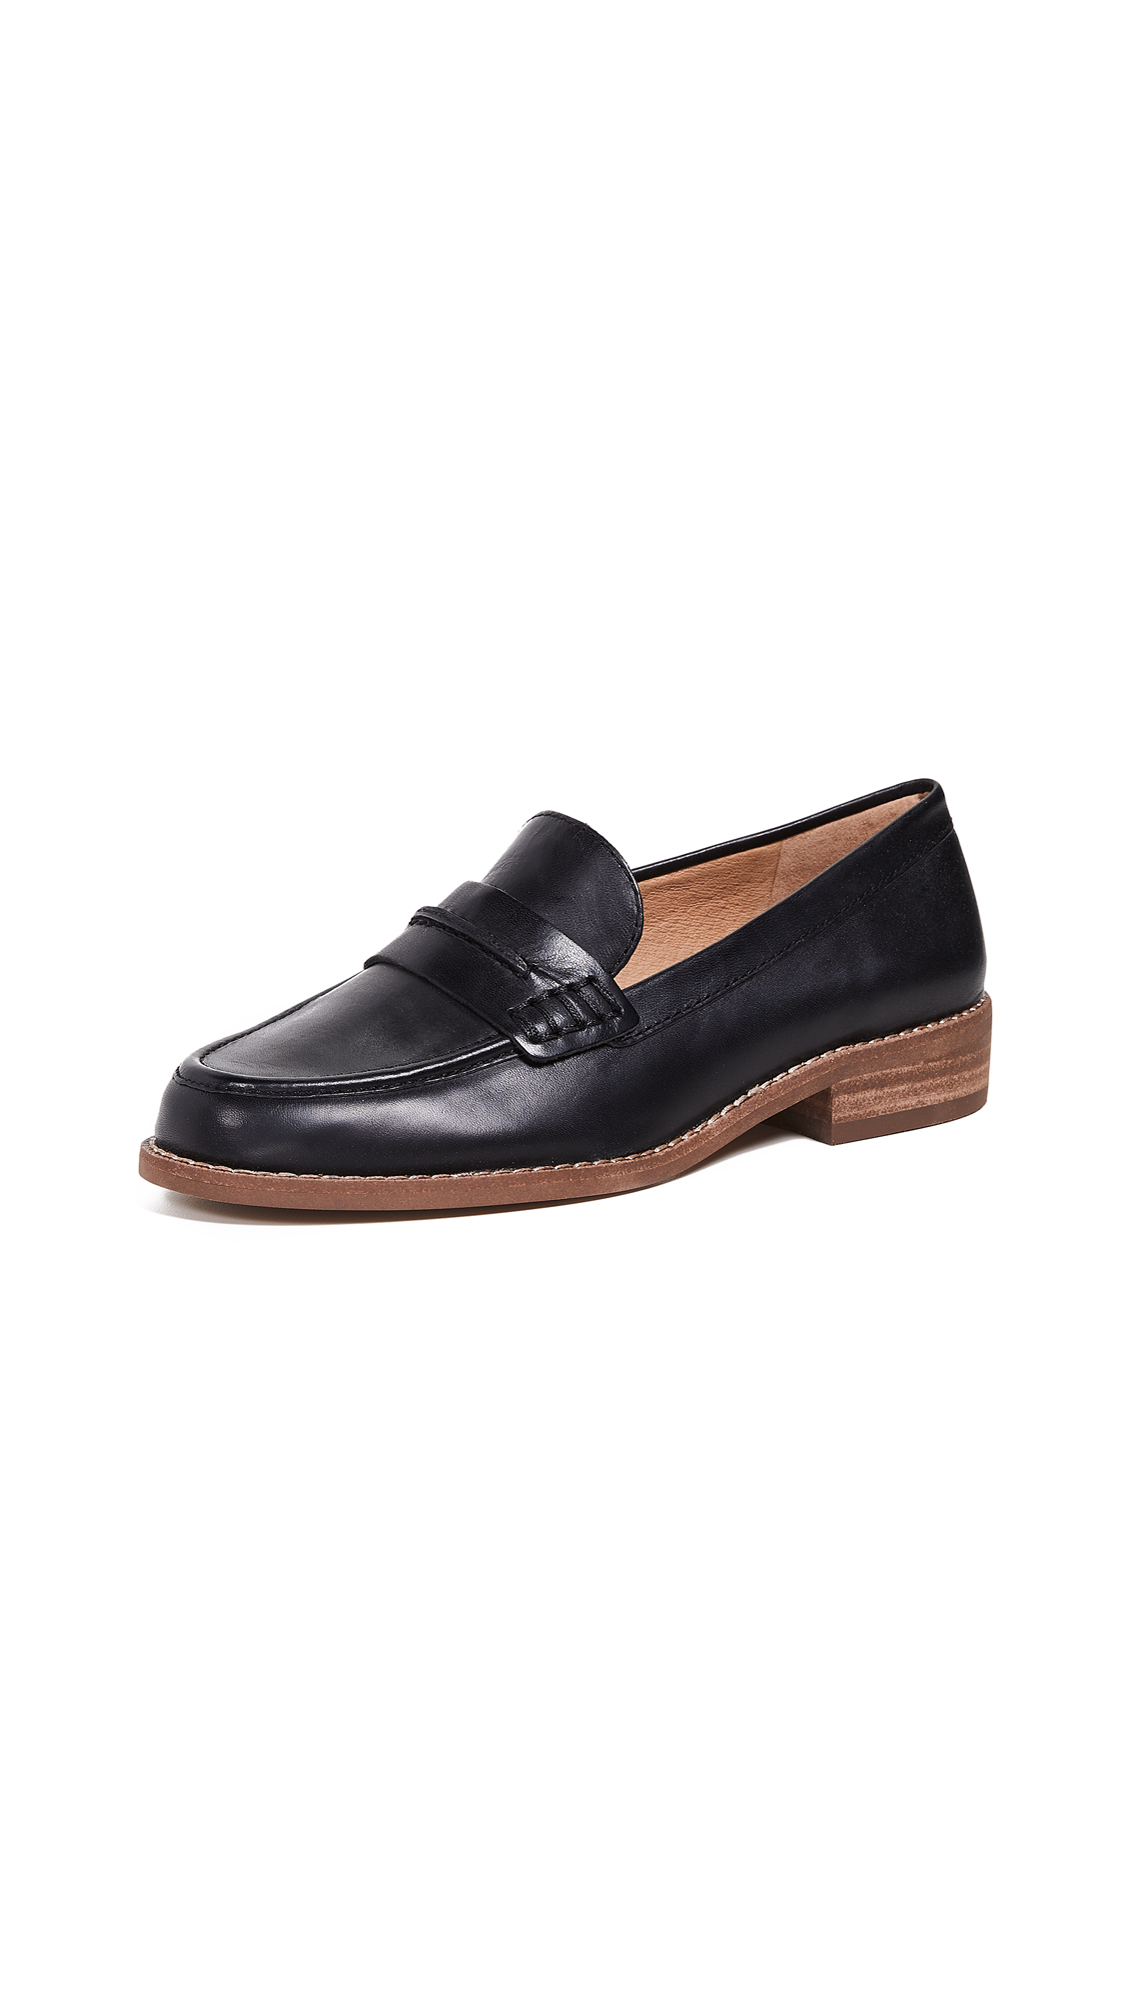 Madewell The Elinor Loafers - True Black